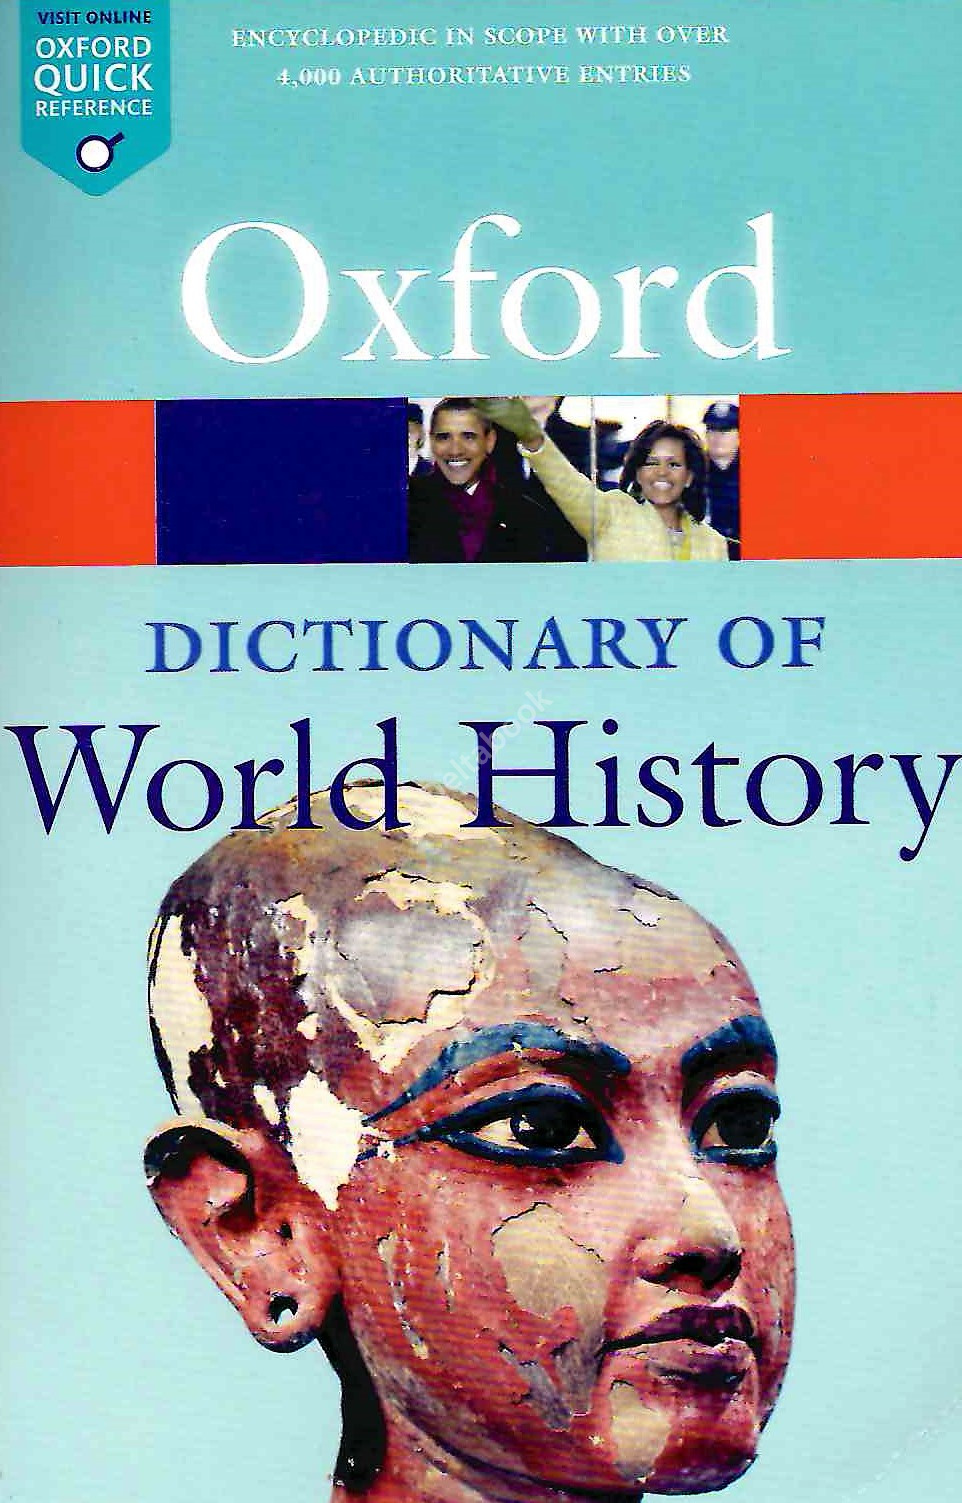 Oxford Dictionary of World History (3rd edition)